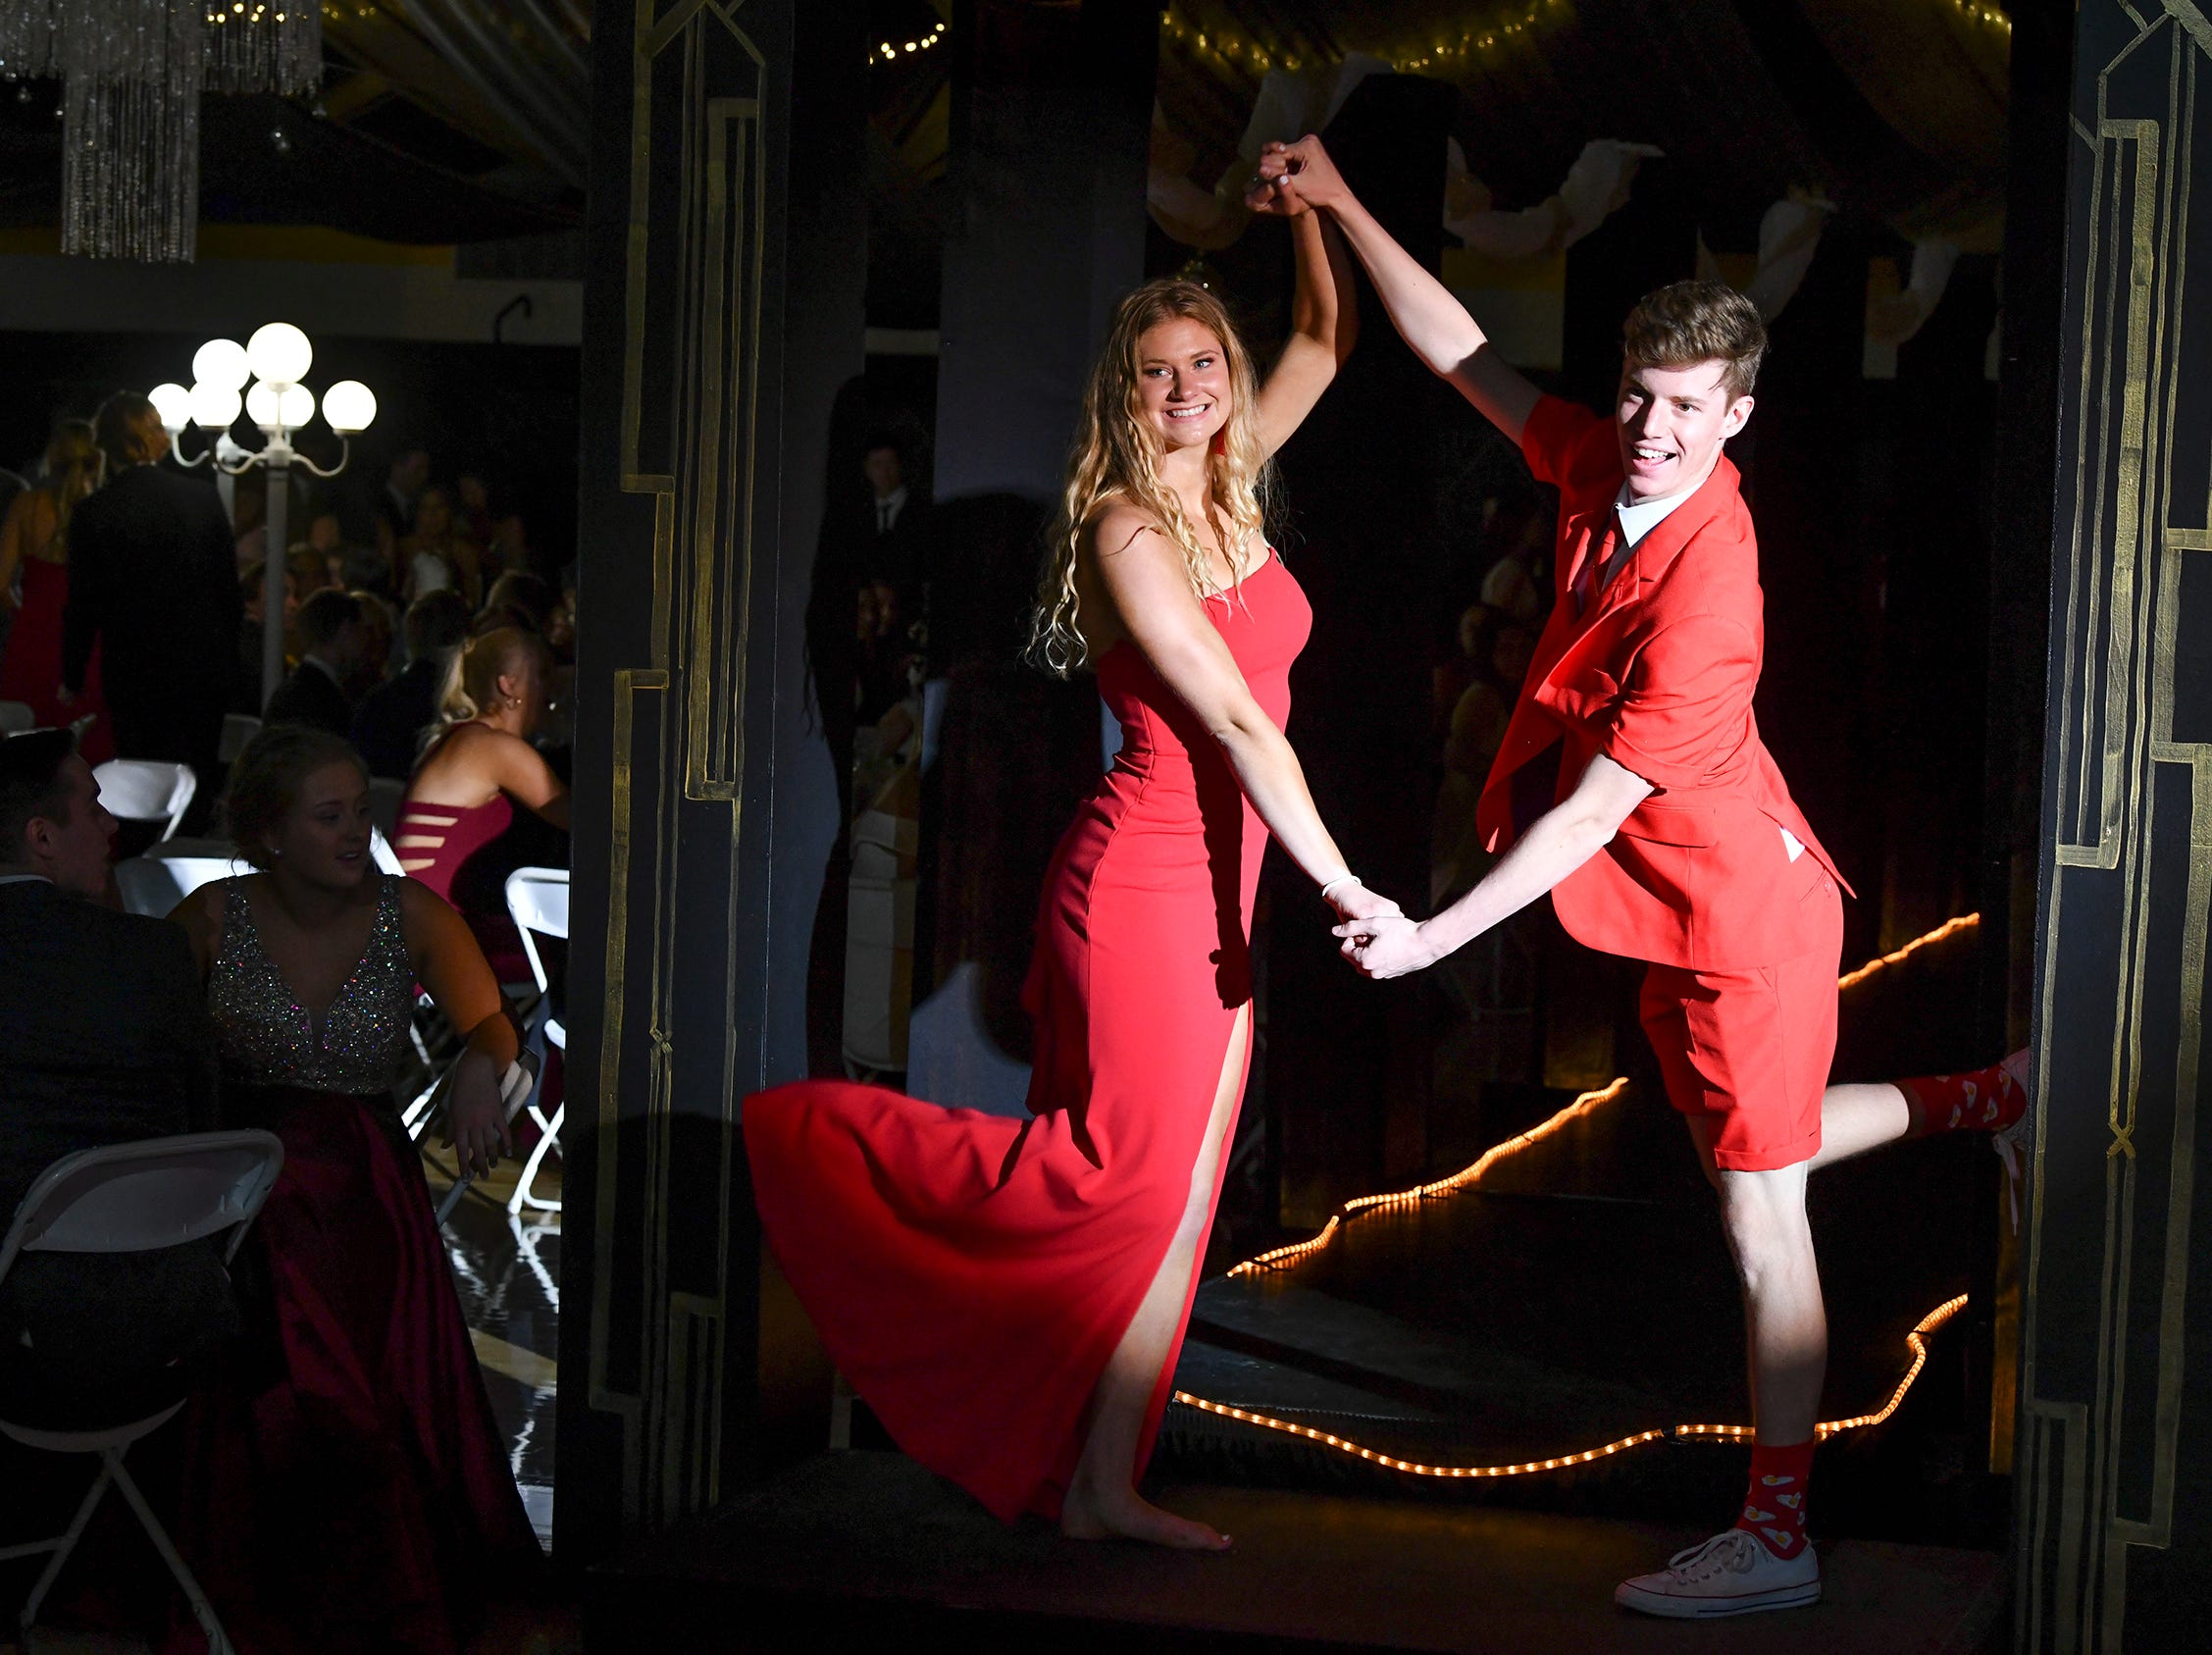 Students strike a pose during prom grand march Saturday, May 4, at Cathedral High School in St. Cloud.